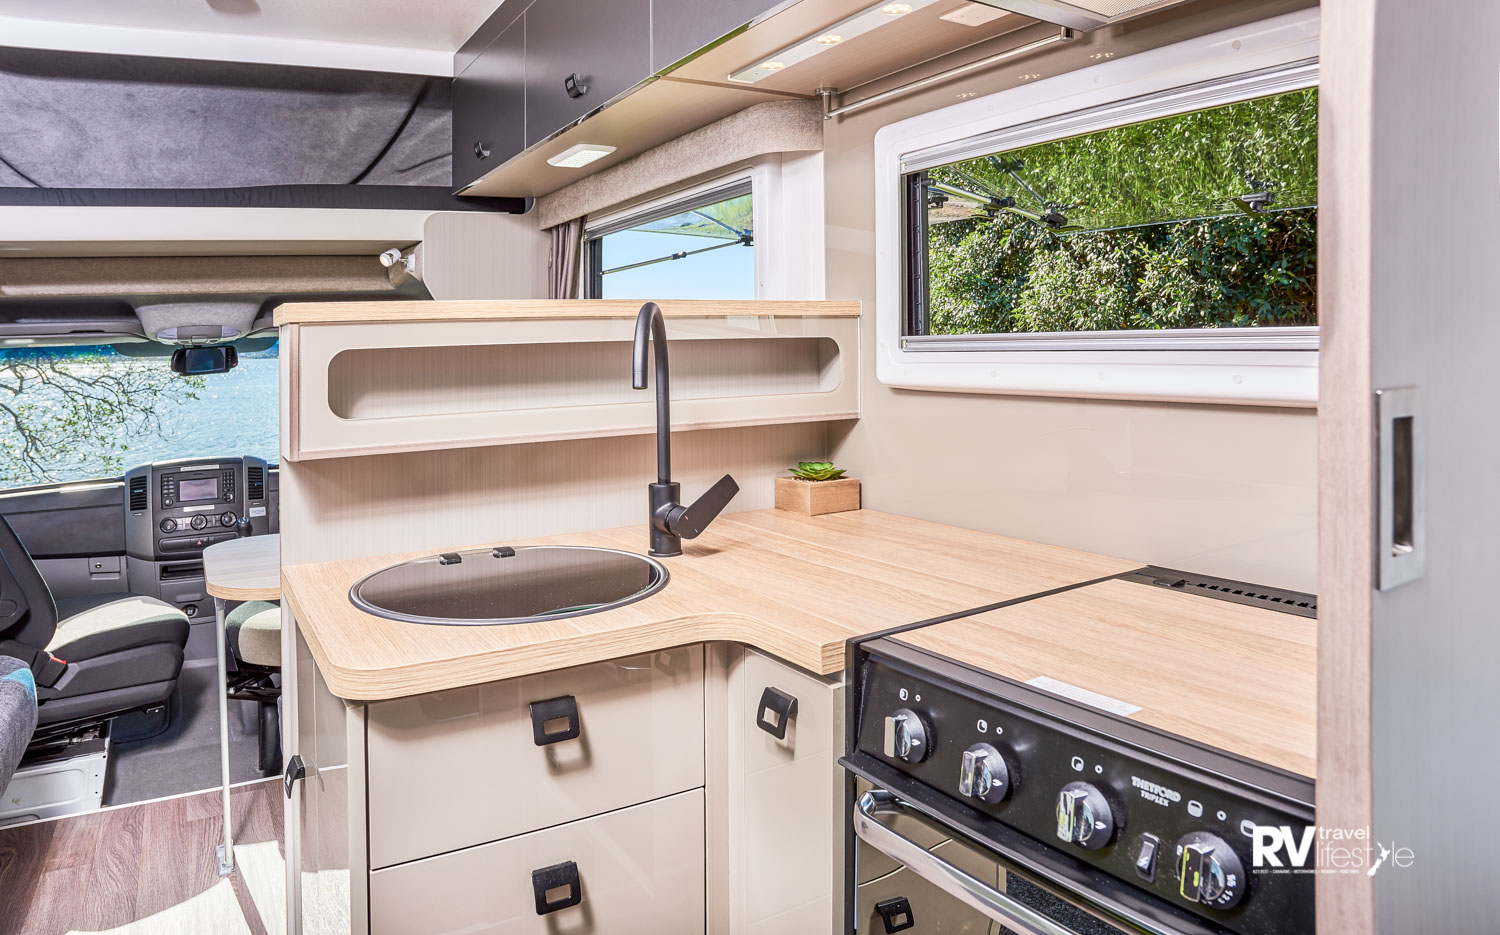 An L-shaped galley – compact yet highly functional